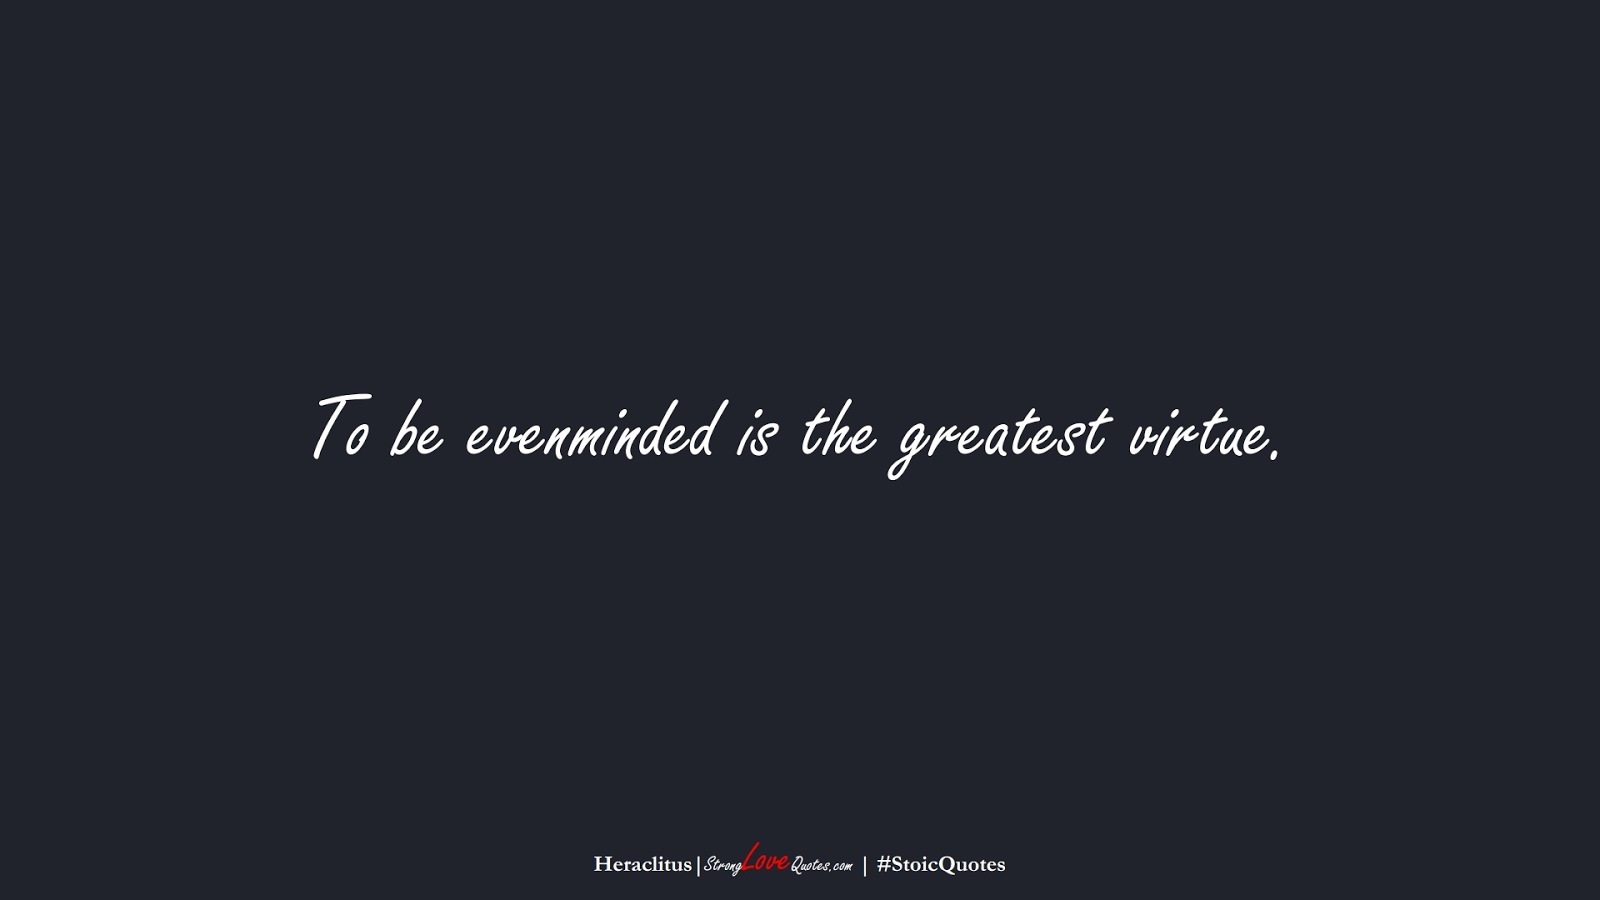 To be evenminded is the greatest virtue. (Heraclitus);  #StoicQuotes